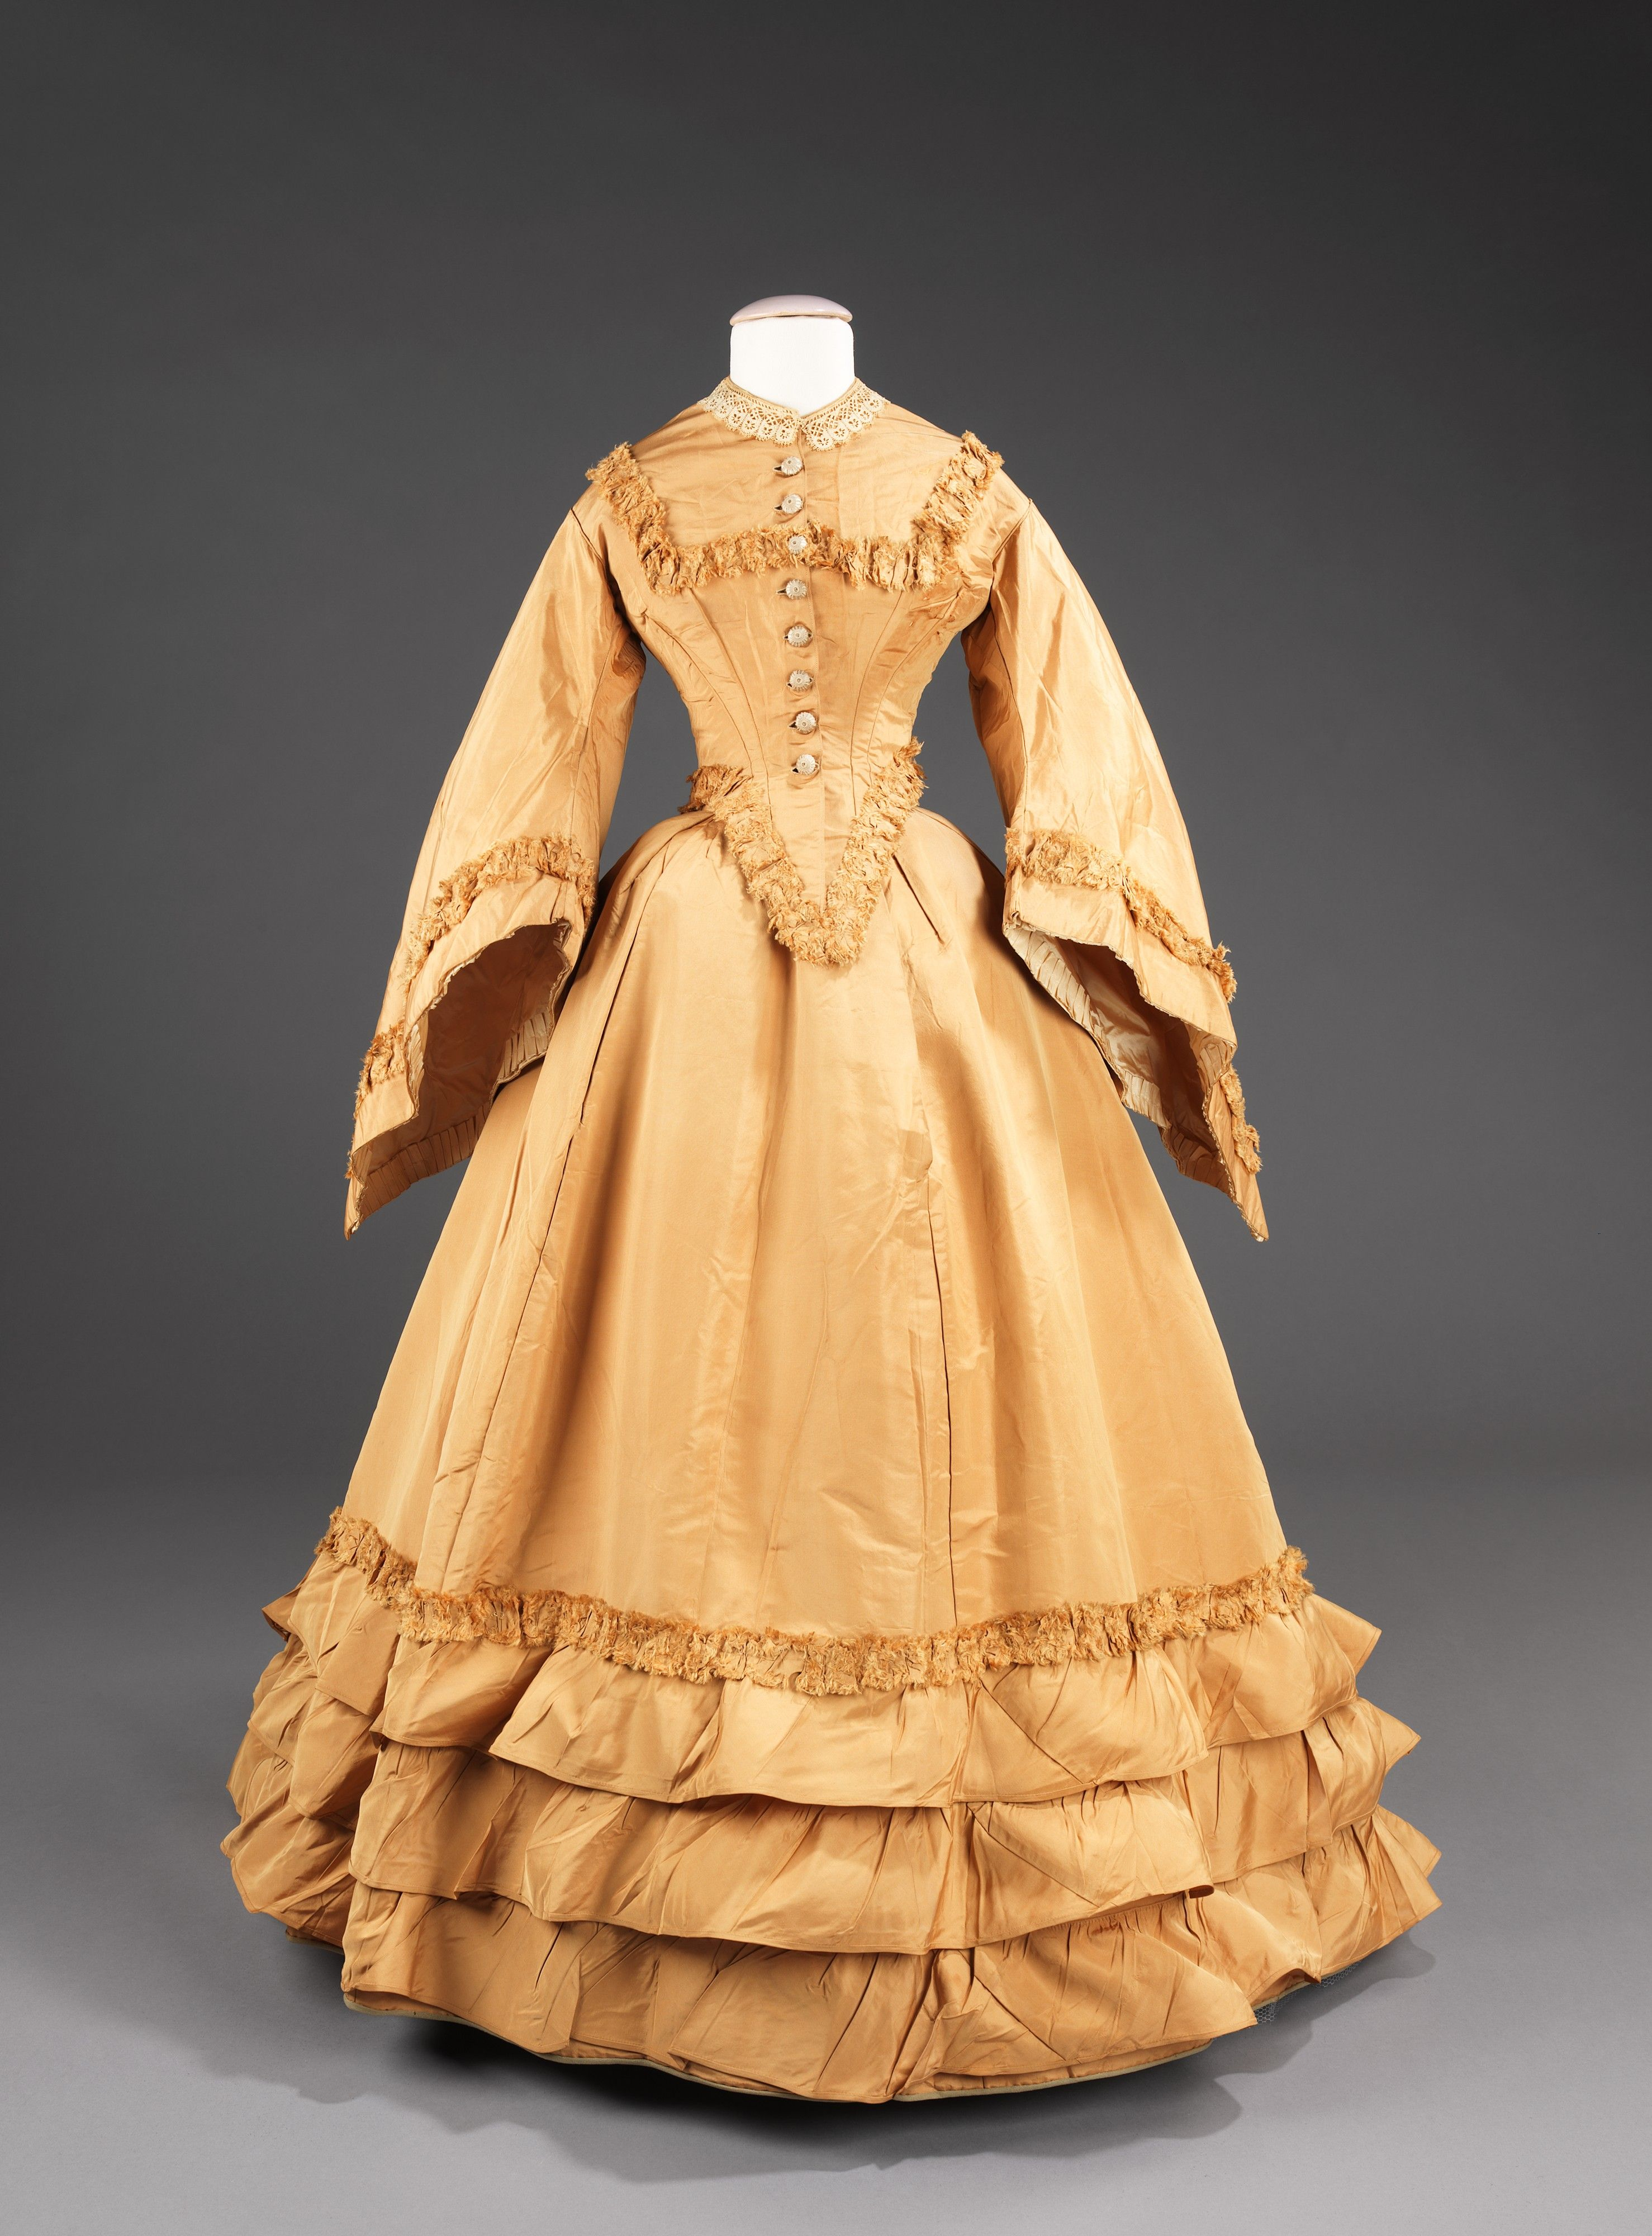 This wedding dress presents a conundrum in that some stylistic aspects of the dress appear to be later than the marriage date of 1851 provided in the original accession records.   While the bodice has very fashionable full size pagoda sleeves, which were a new shape in 1851, the skirt with bustle, train and ruffles at bottom is more consistent with the 1870s rather than the dome shape of the 1850s